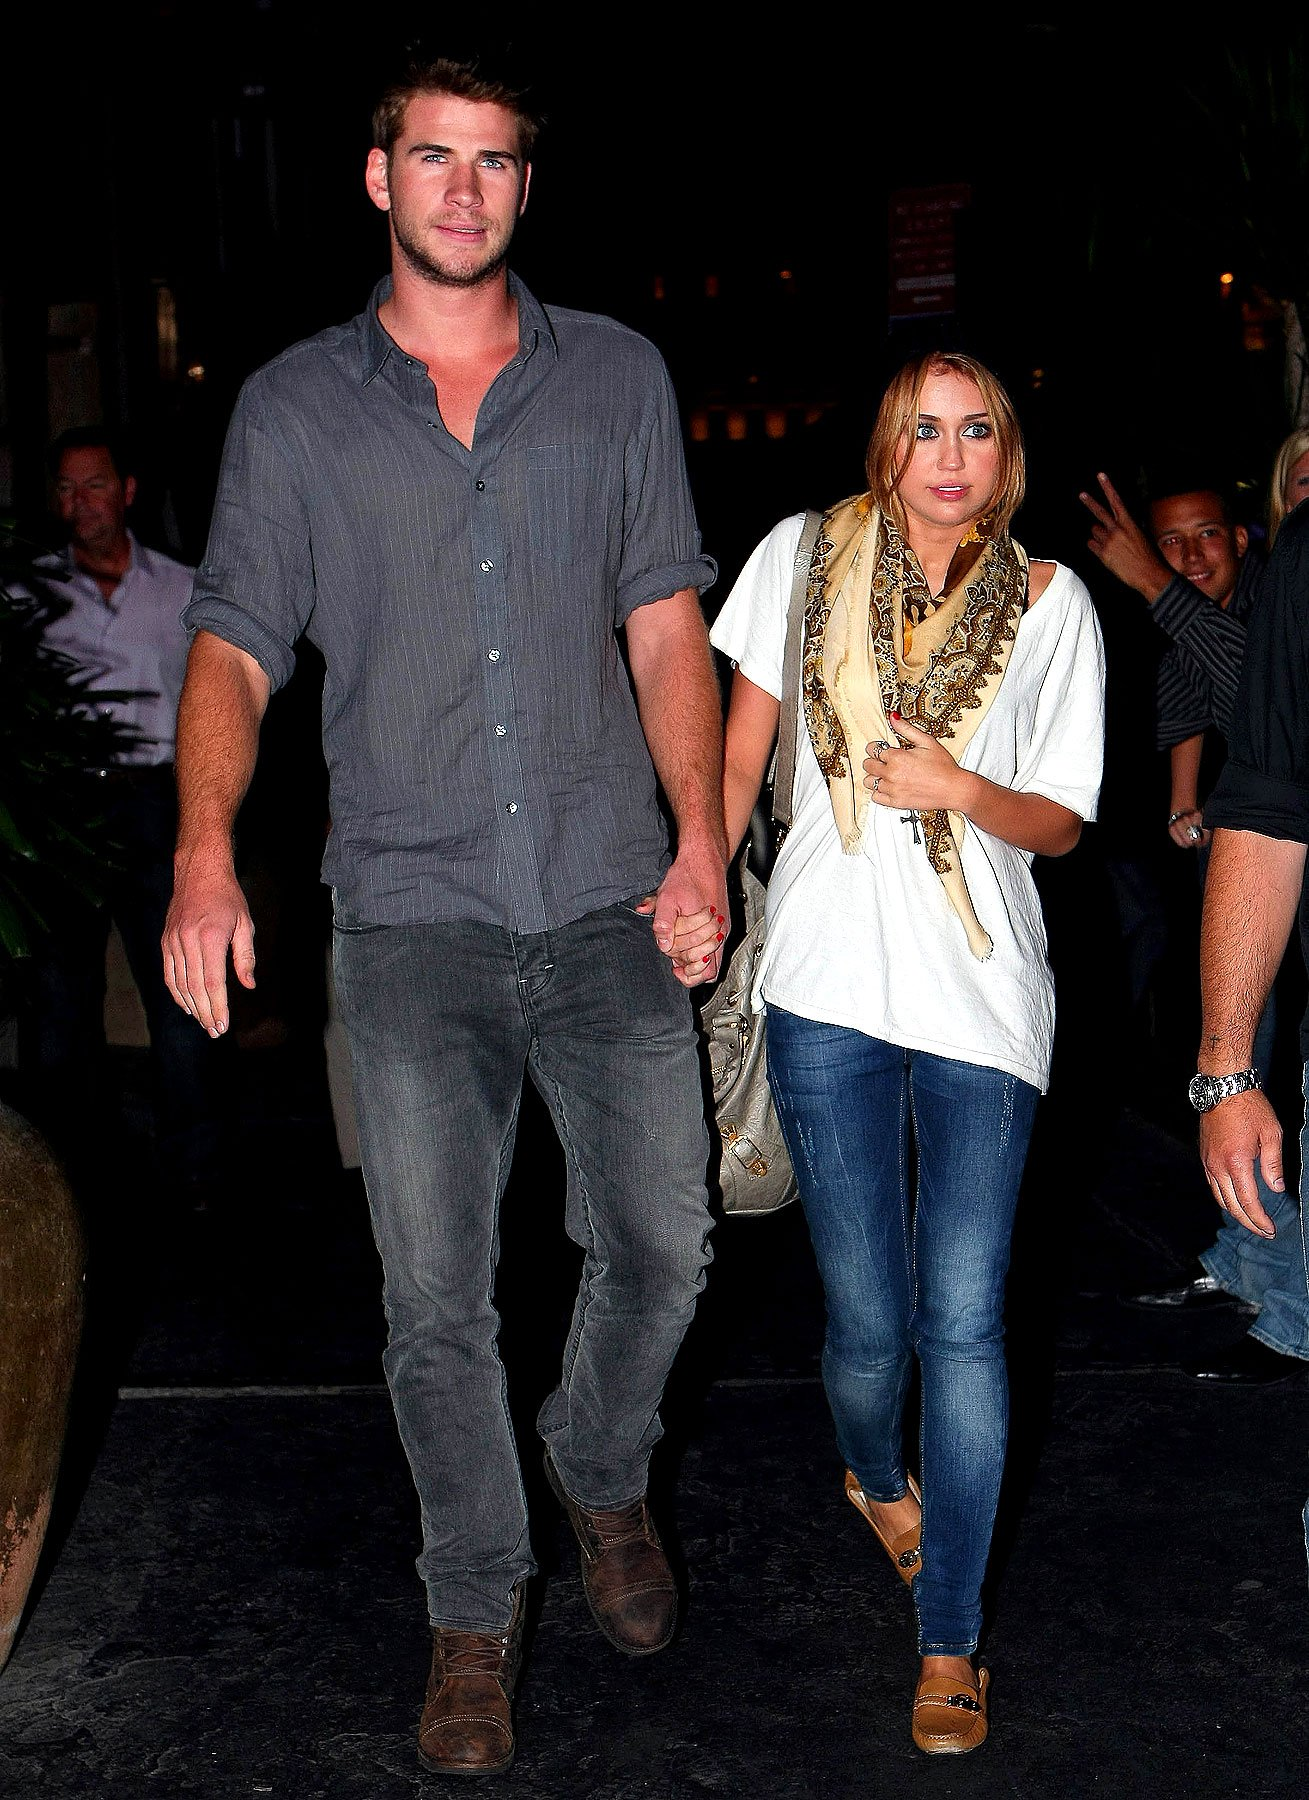 Miley Cyrus and Liam Hemsworth Feed Their Love Over Dinner (PHOTOS)